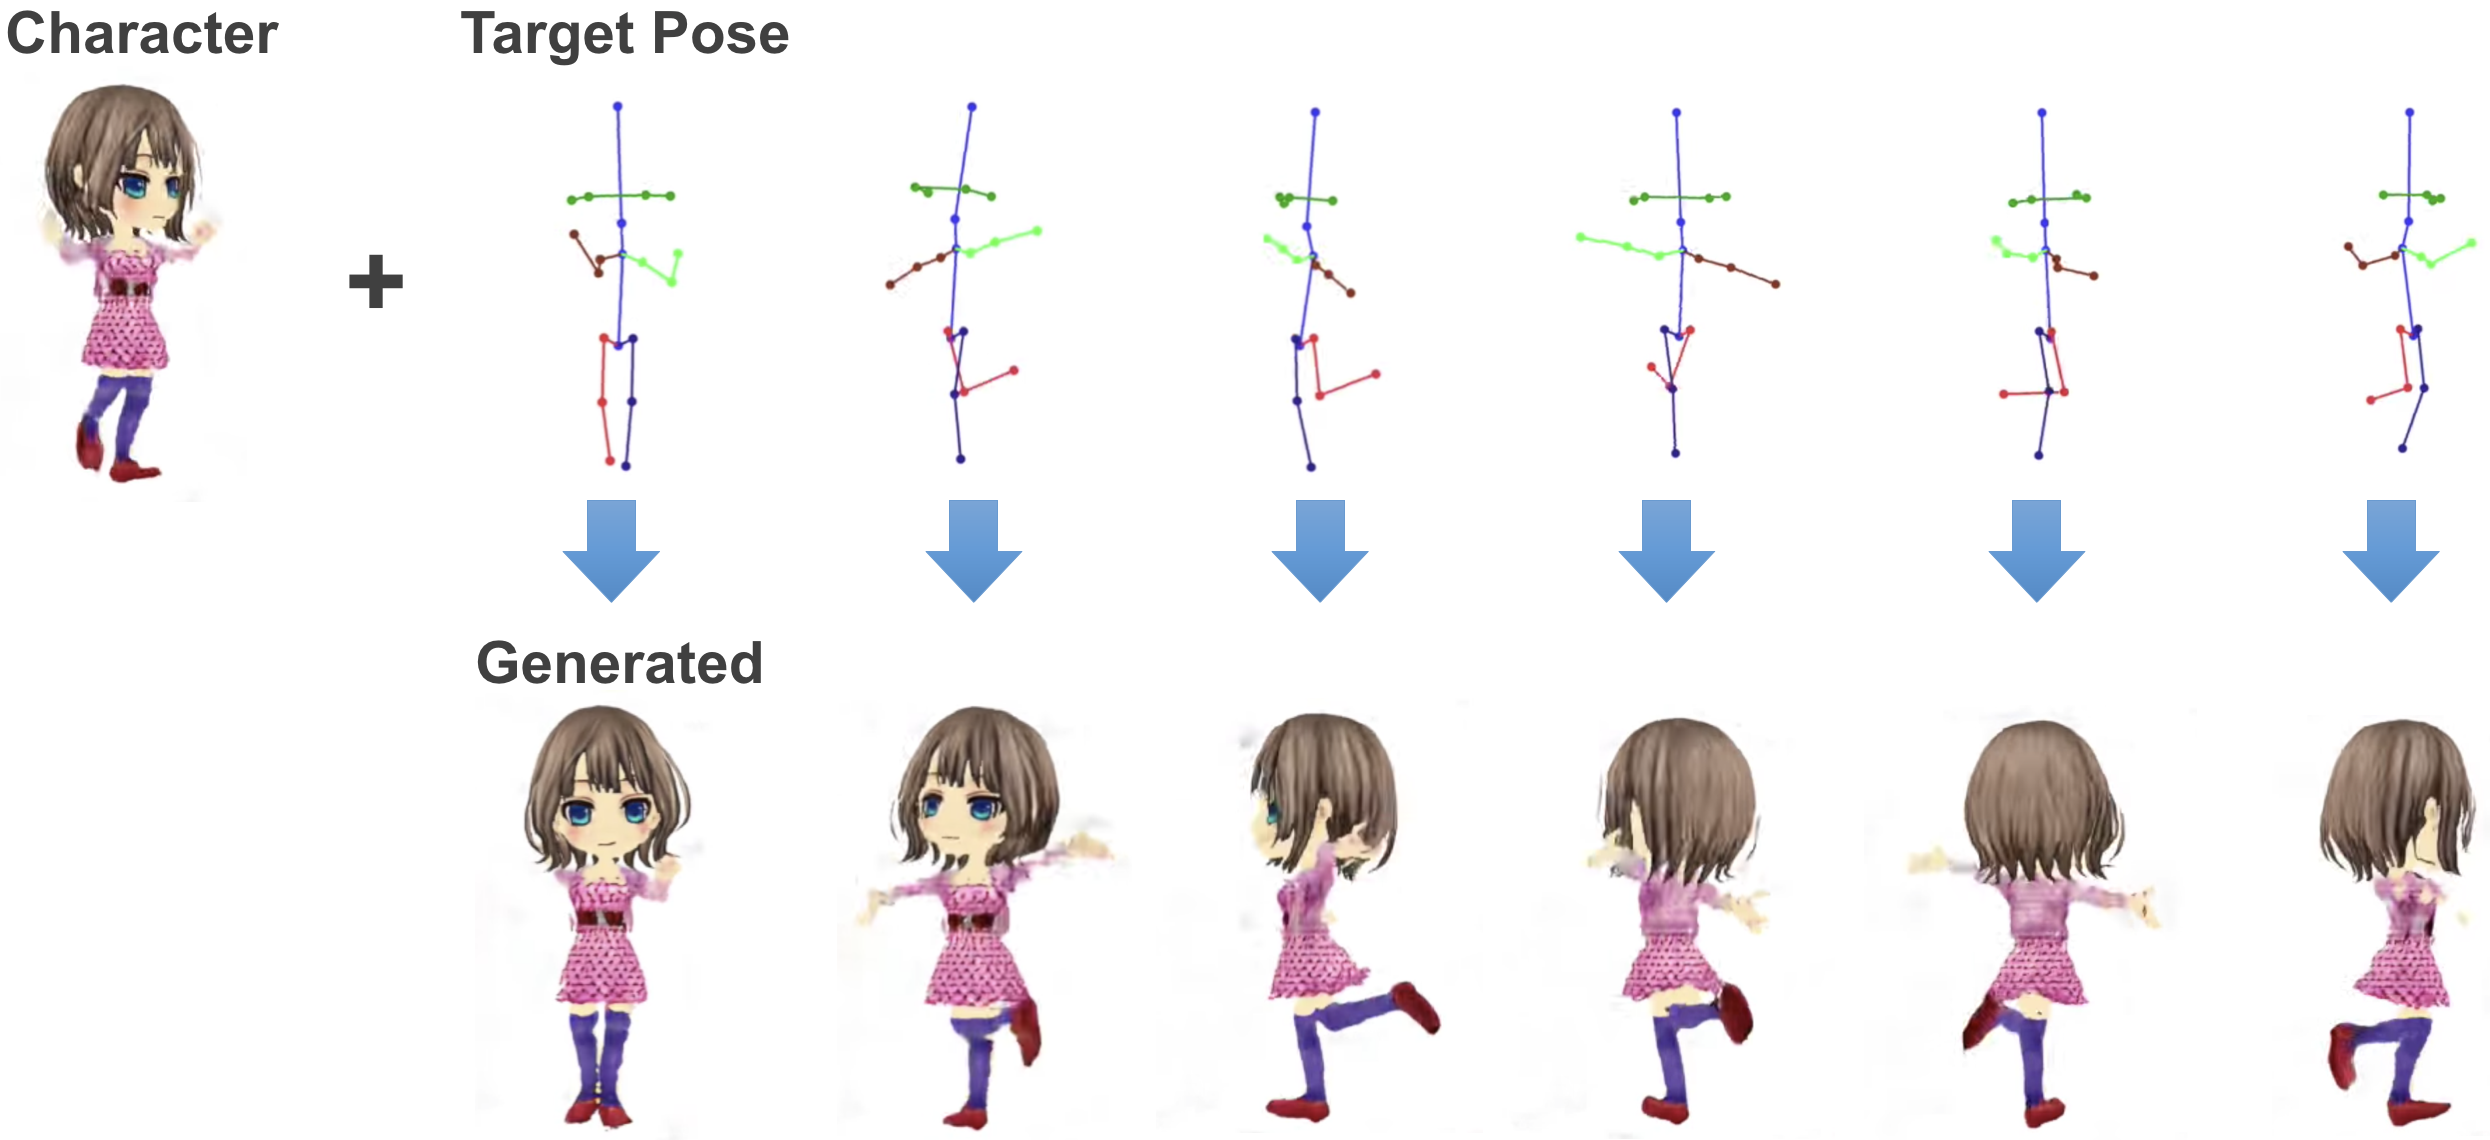 More specifically we map the representation of the specified anime character into